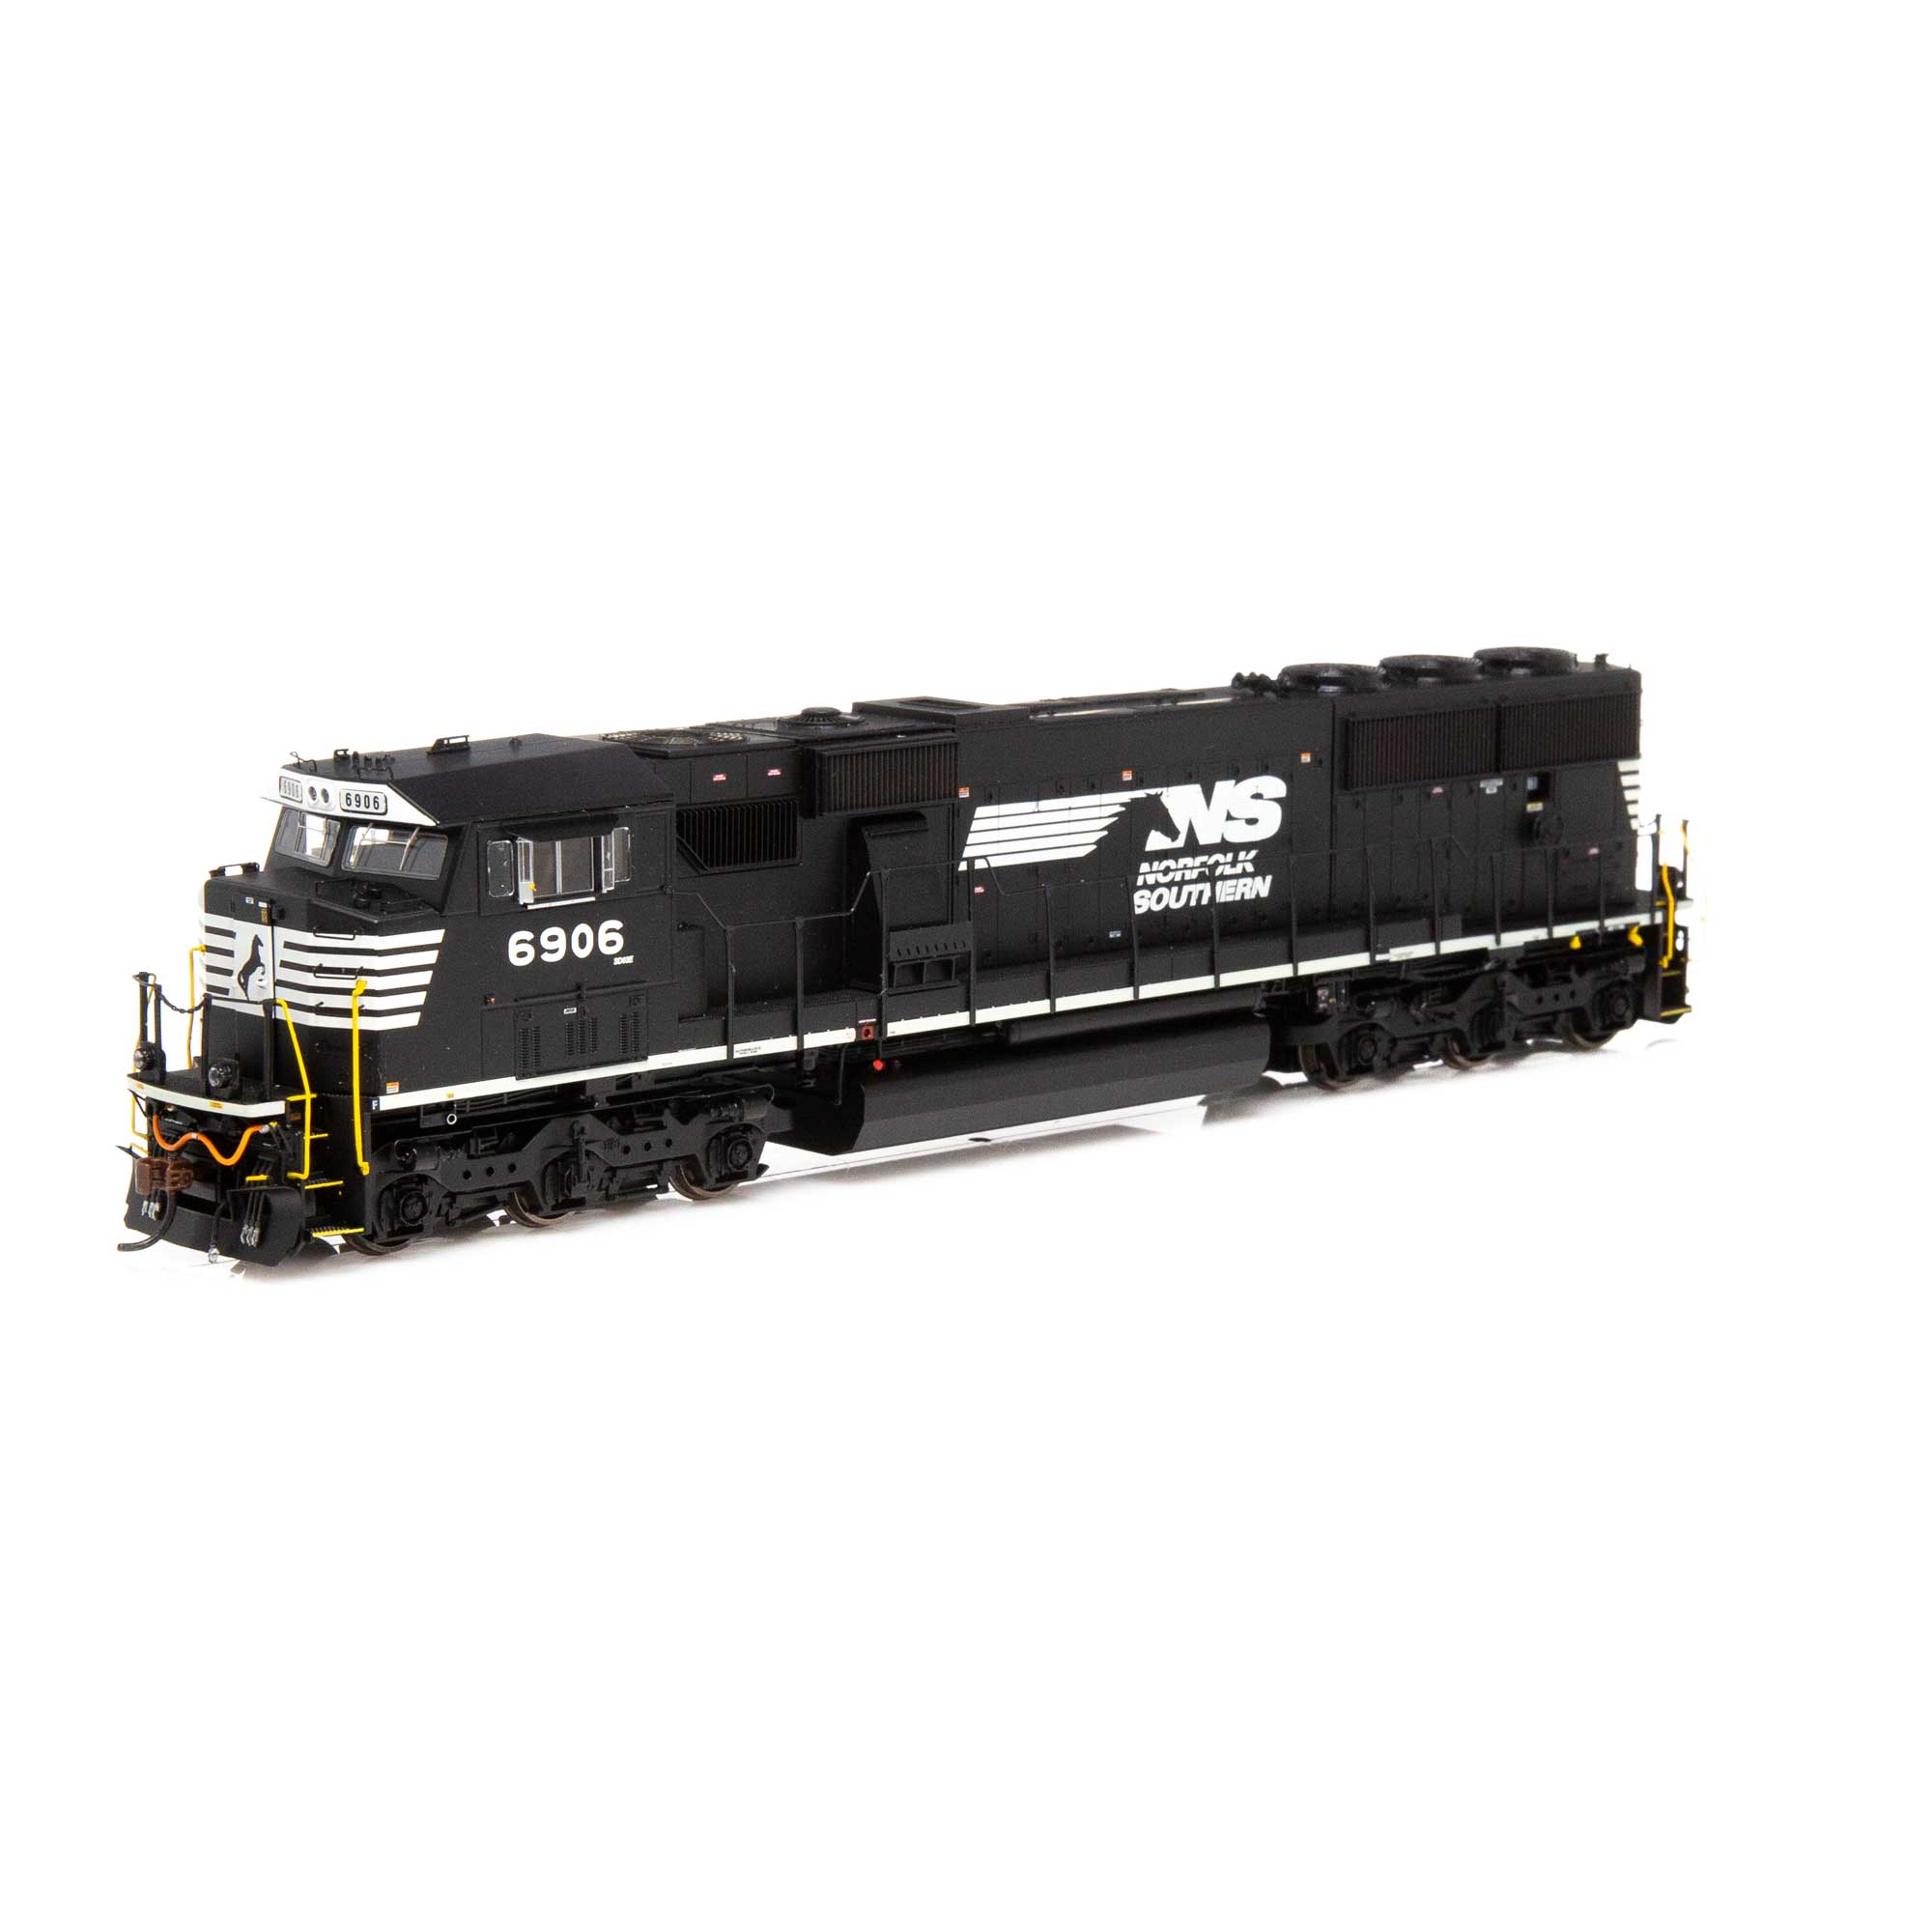 HO SD60E w/DCC & Sound, NS #6906